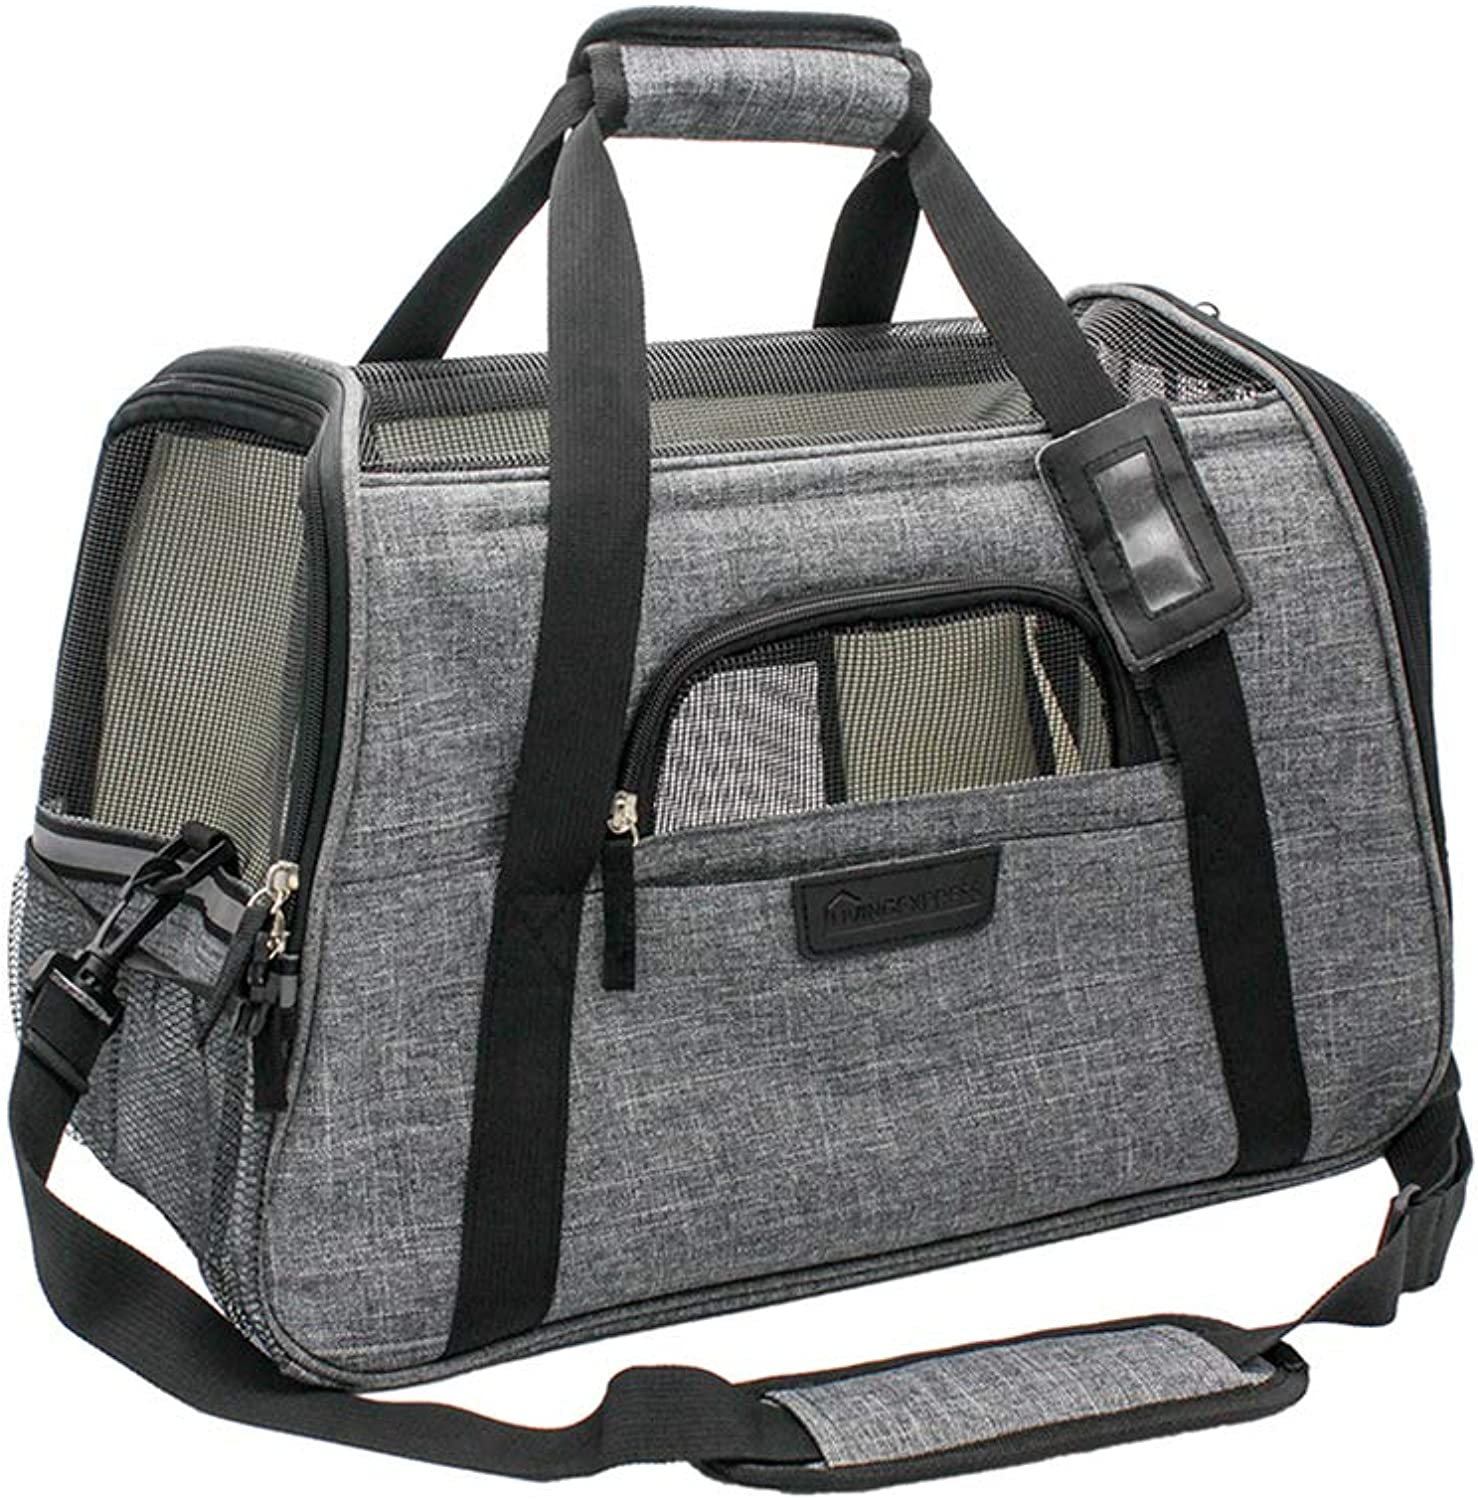 Living Express Airline Dog Carrier   Pet Carrier Airline Approved Travel Foldable,Soft Sided Carrier with Fleece Puppy Bedding,Dogs Purses(17.5 L x 10 W x 11 H,Grey)